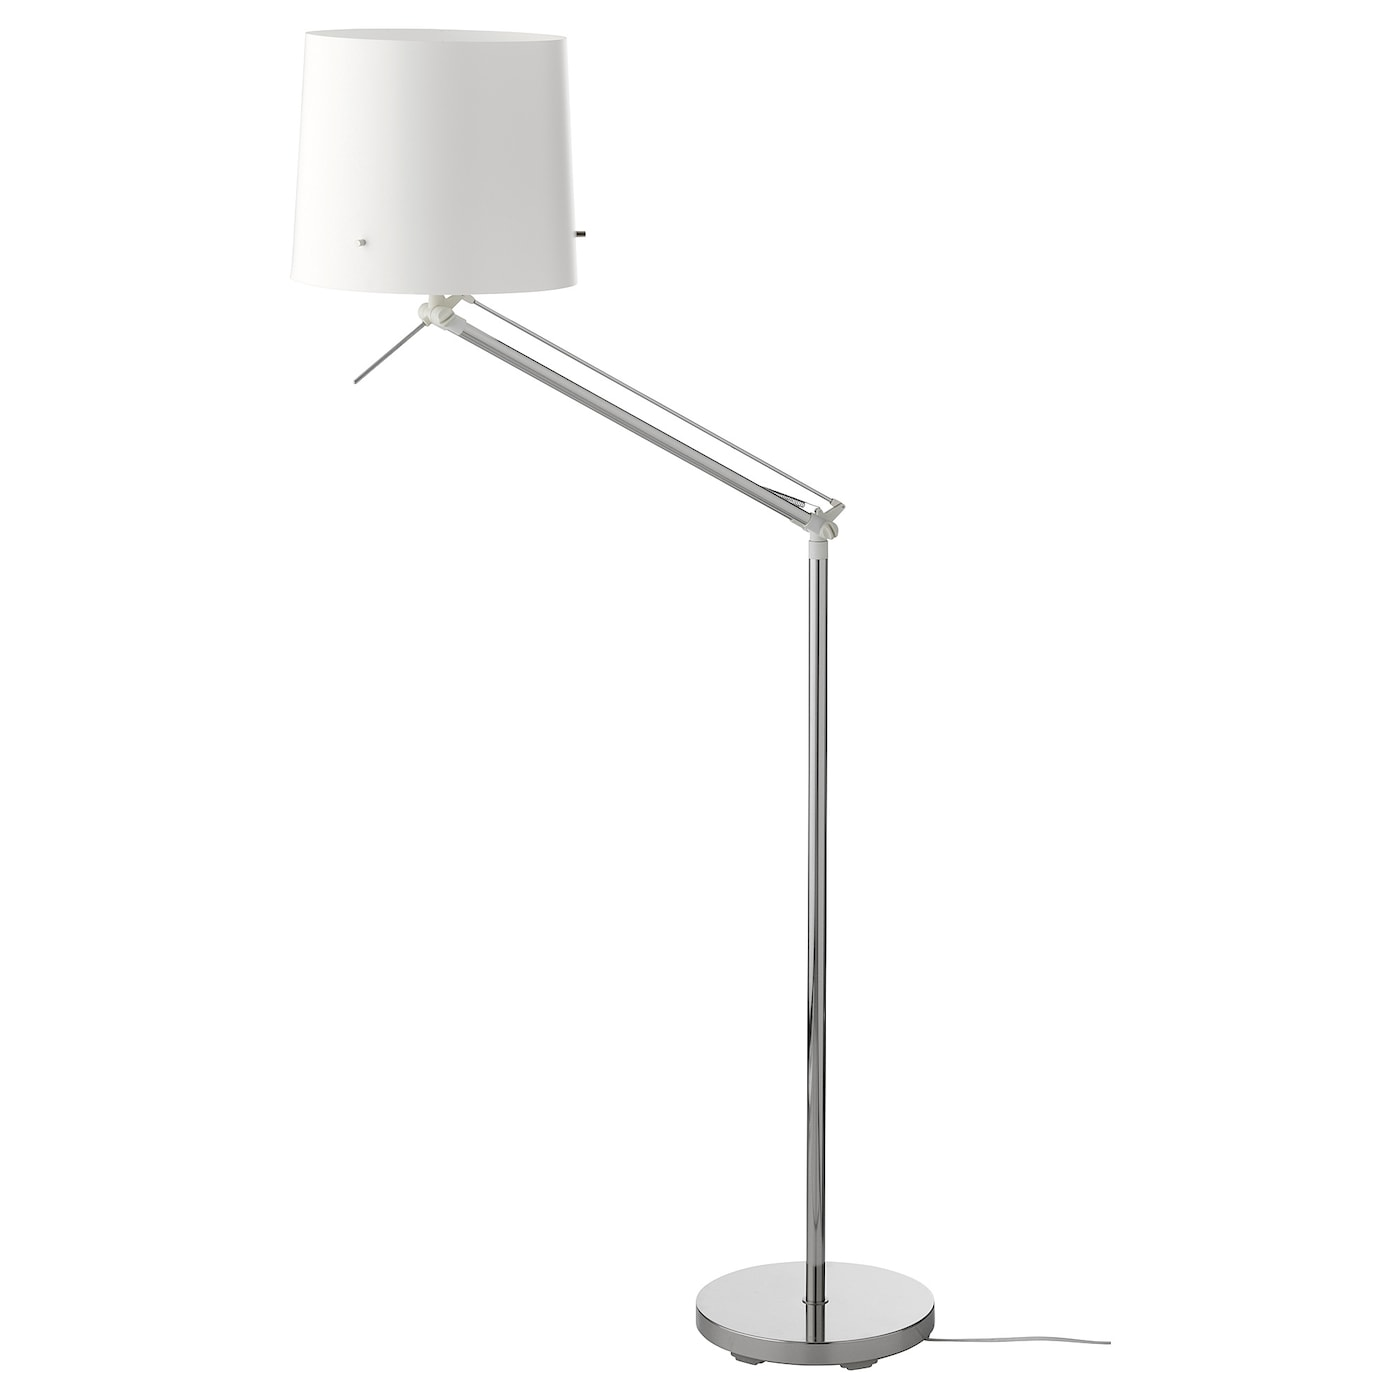 IKEA SAMTID floor/reading lamp Gives both directed and diffused light.